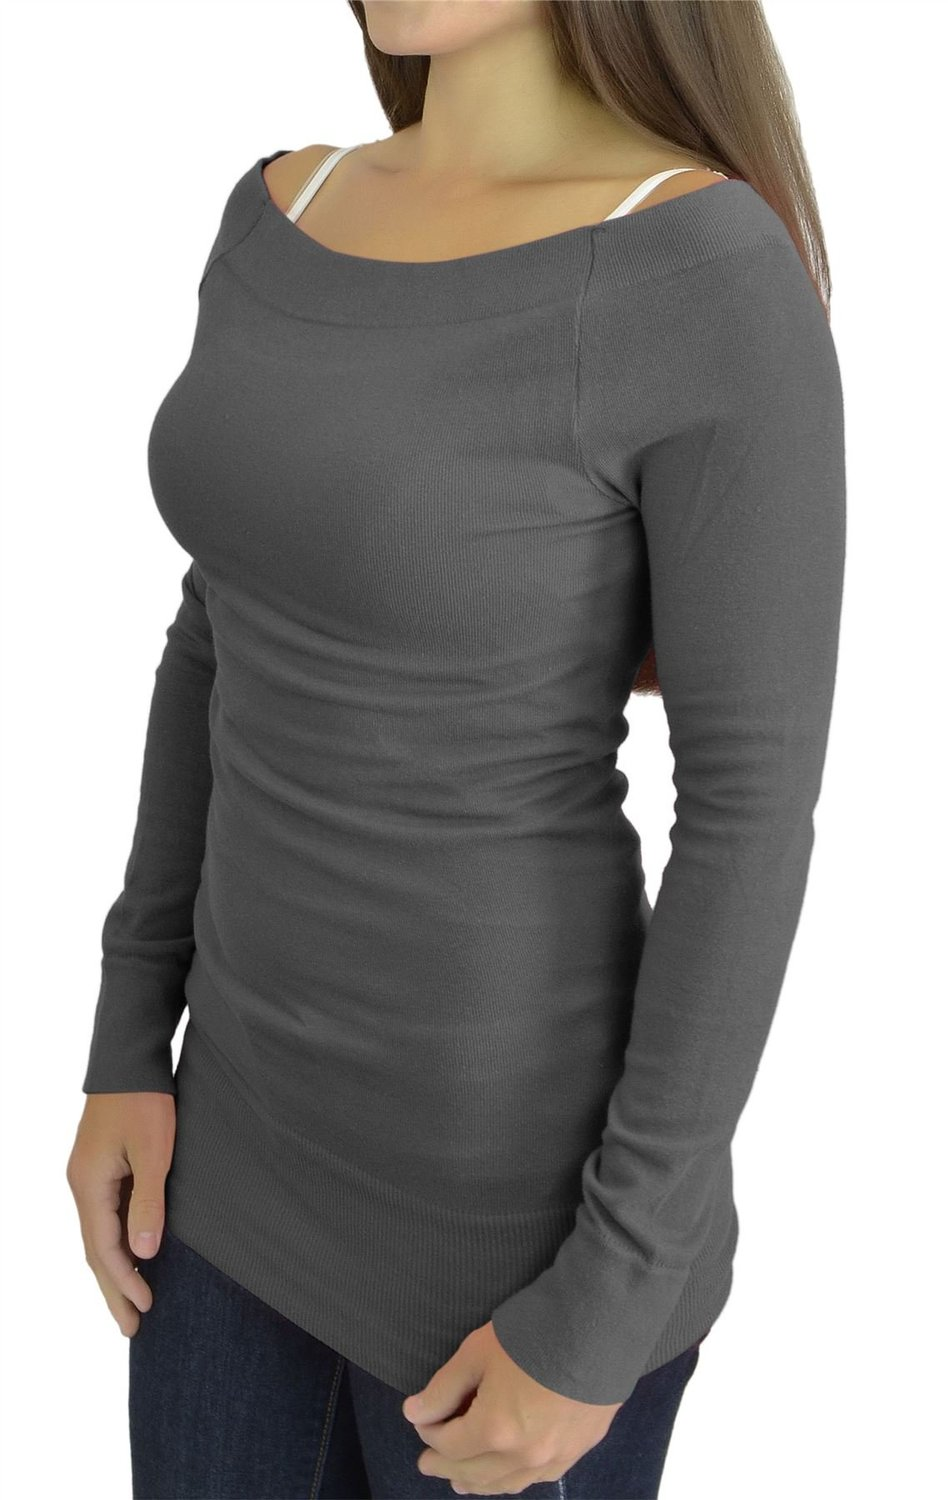 Belle Donne - Women's Seamless Long Sleeve Boat-Neck Solid Color Tunic Top - Gray, Small/Medium